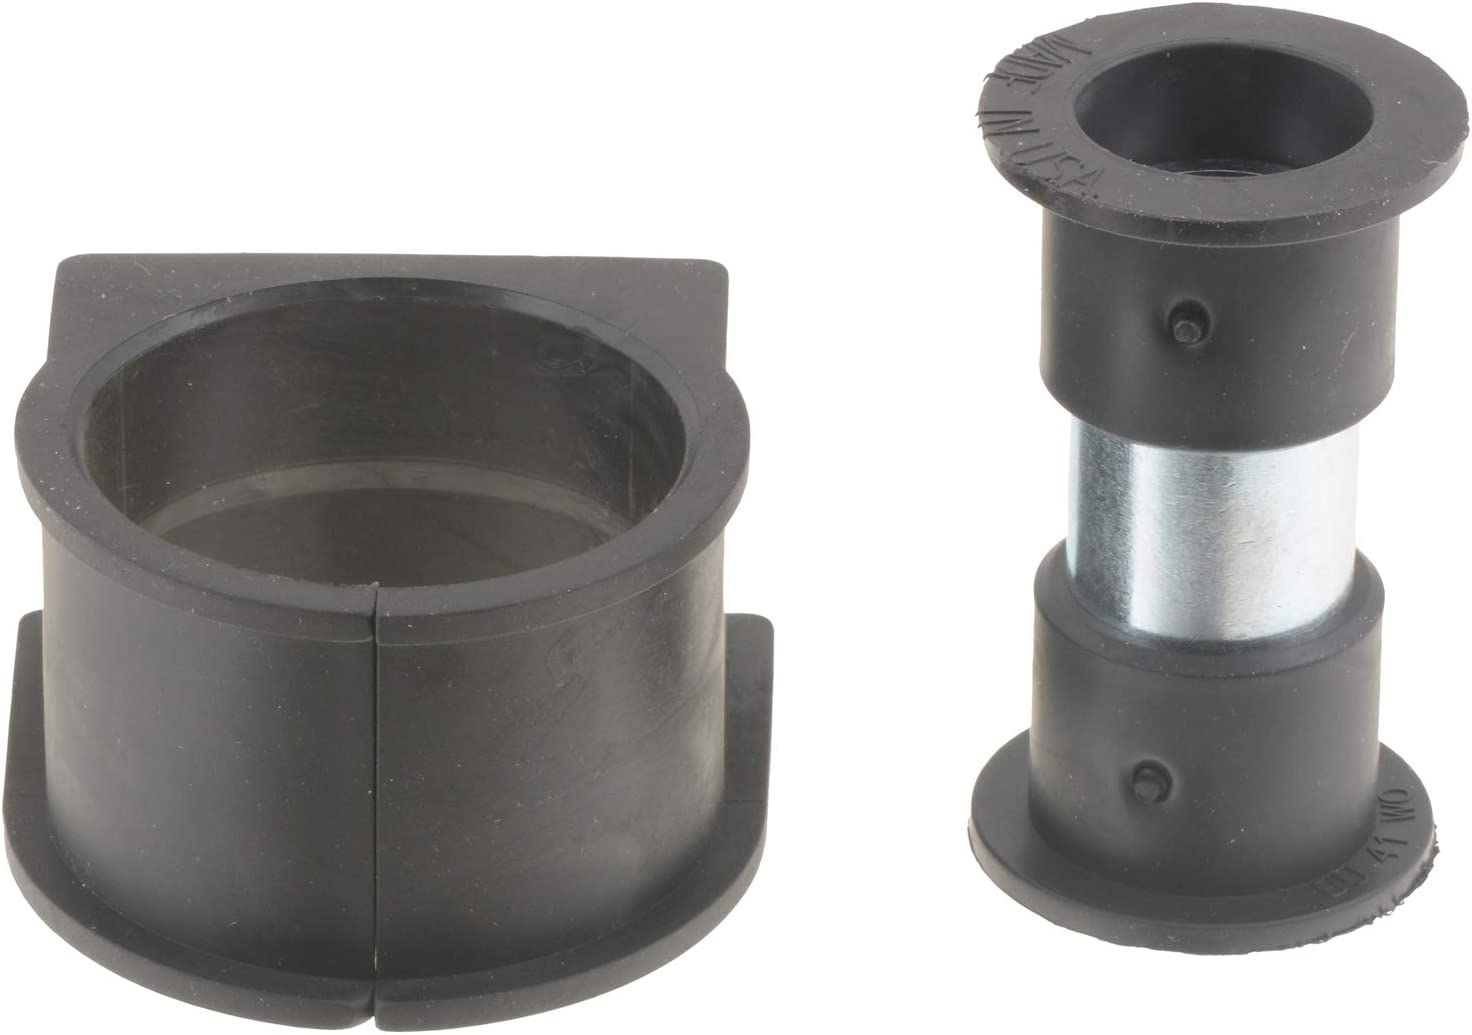 TRW JBU2128 Rack and Pinion Mount Bushing Translated Toyota for 199 New products, world's highest quality popular! Tacoma: